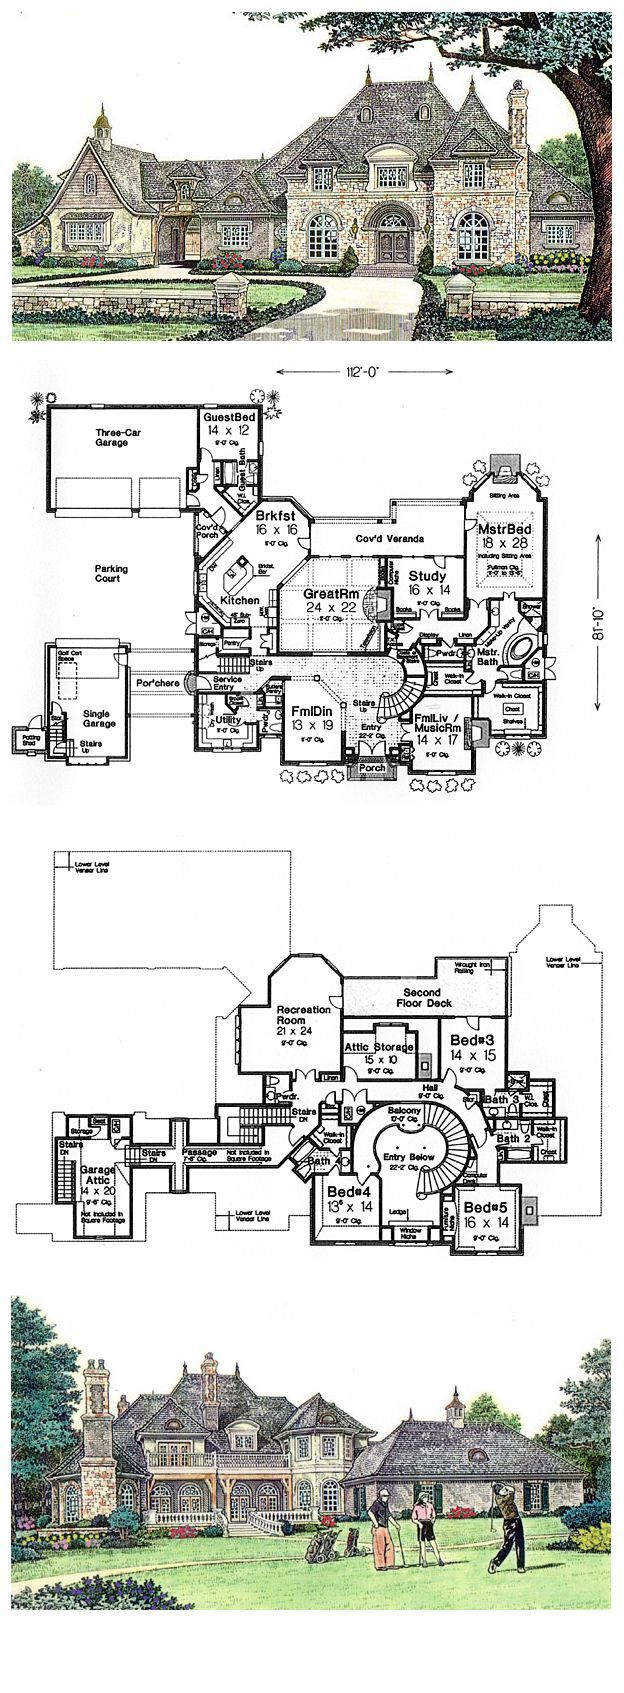 cool house plan id chp 39871 total living area 6274 sq ft 5